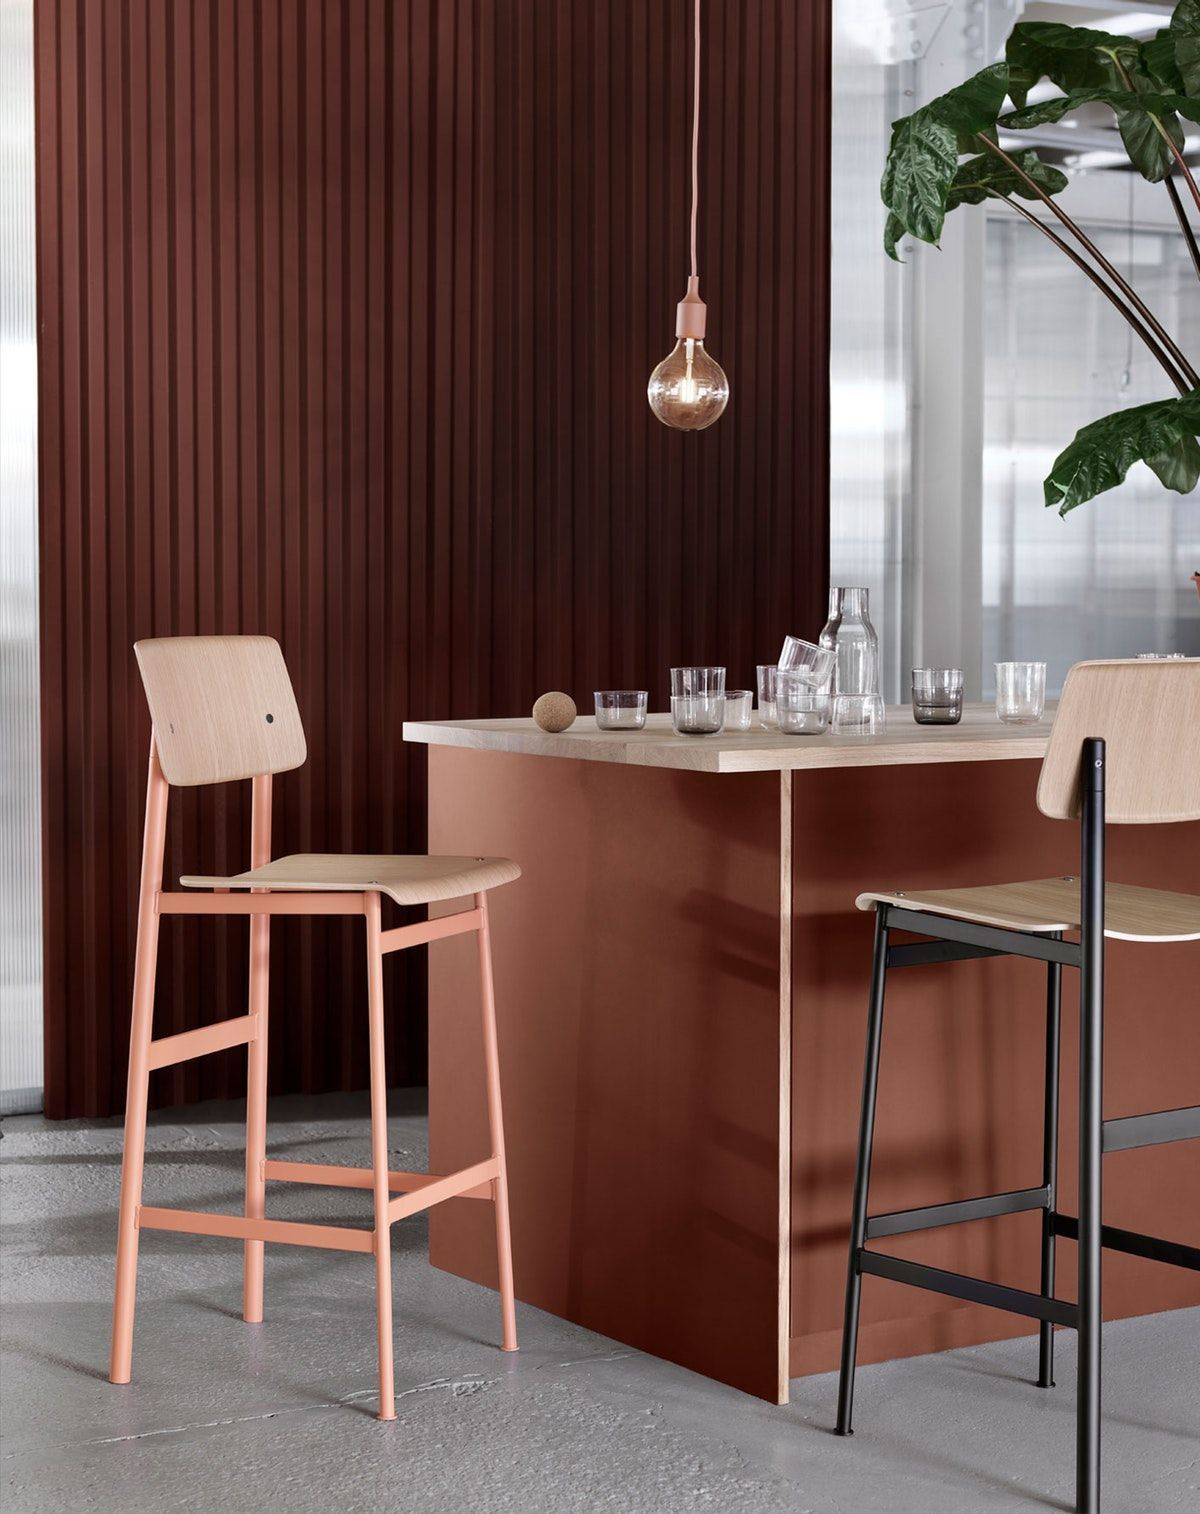 Today, we are going to share with you the modern bar